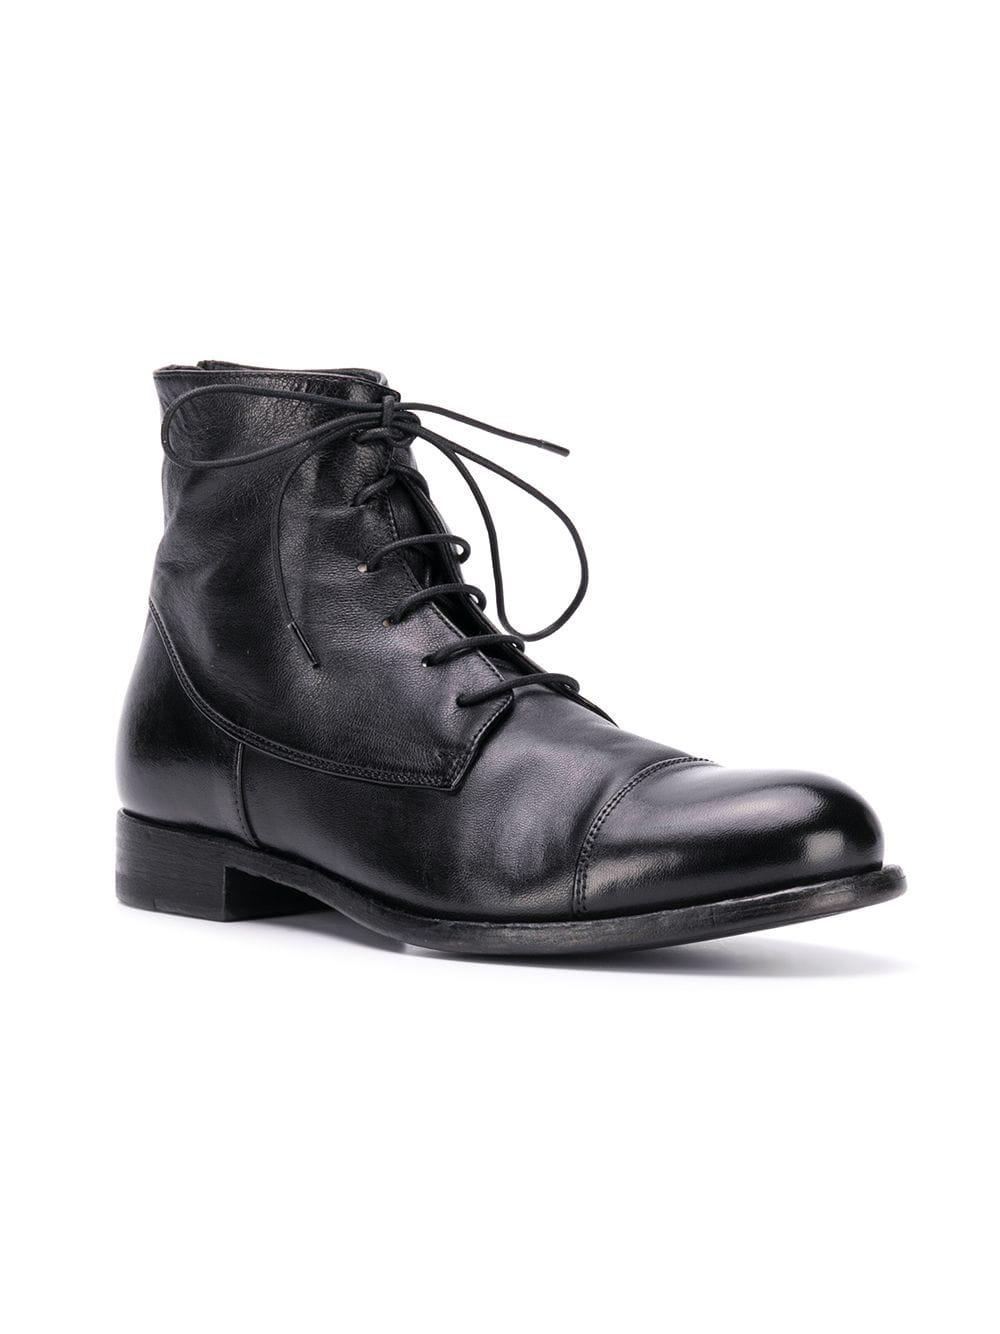 c77f530c34bc3 Lyst - Pantanetti Ankle Lace-up Boots in Black